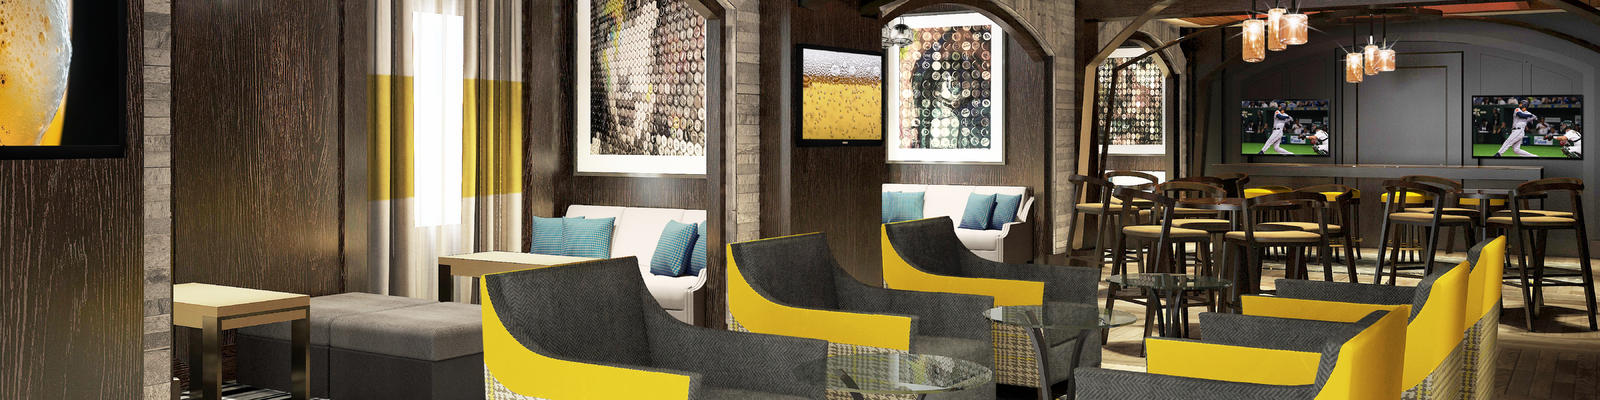 Craft Social, The Craft Social Beer Bar on Celebrity Equinox (Photo: Celebrity Cruises)